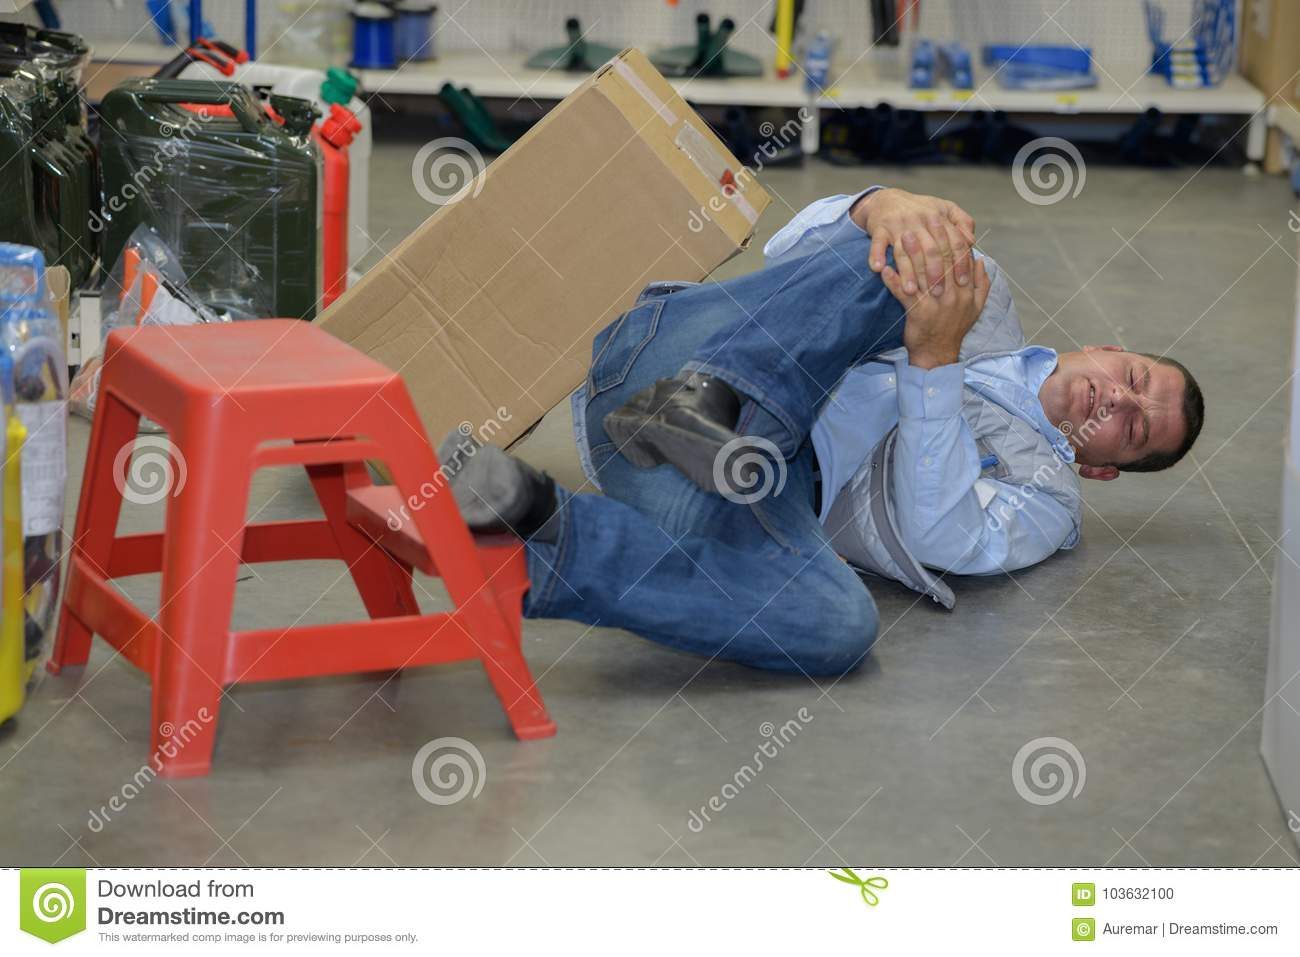 Man worker with knee injury concept accident at work